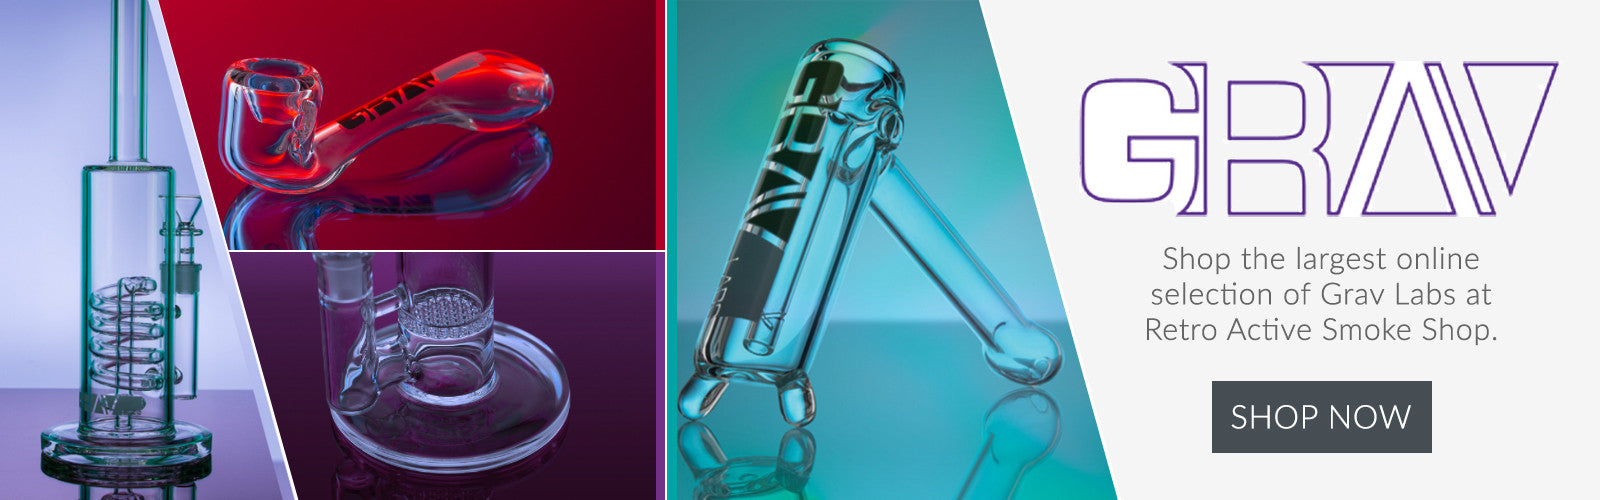 Shop the Largest Selection of Grav Labs at Retro Active Smoke Shop